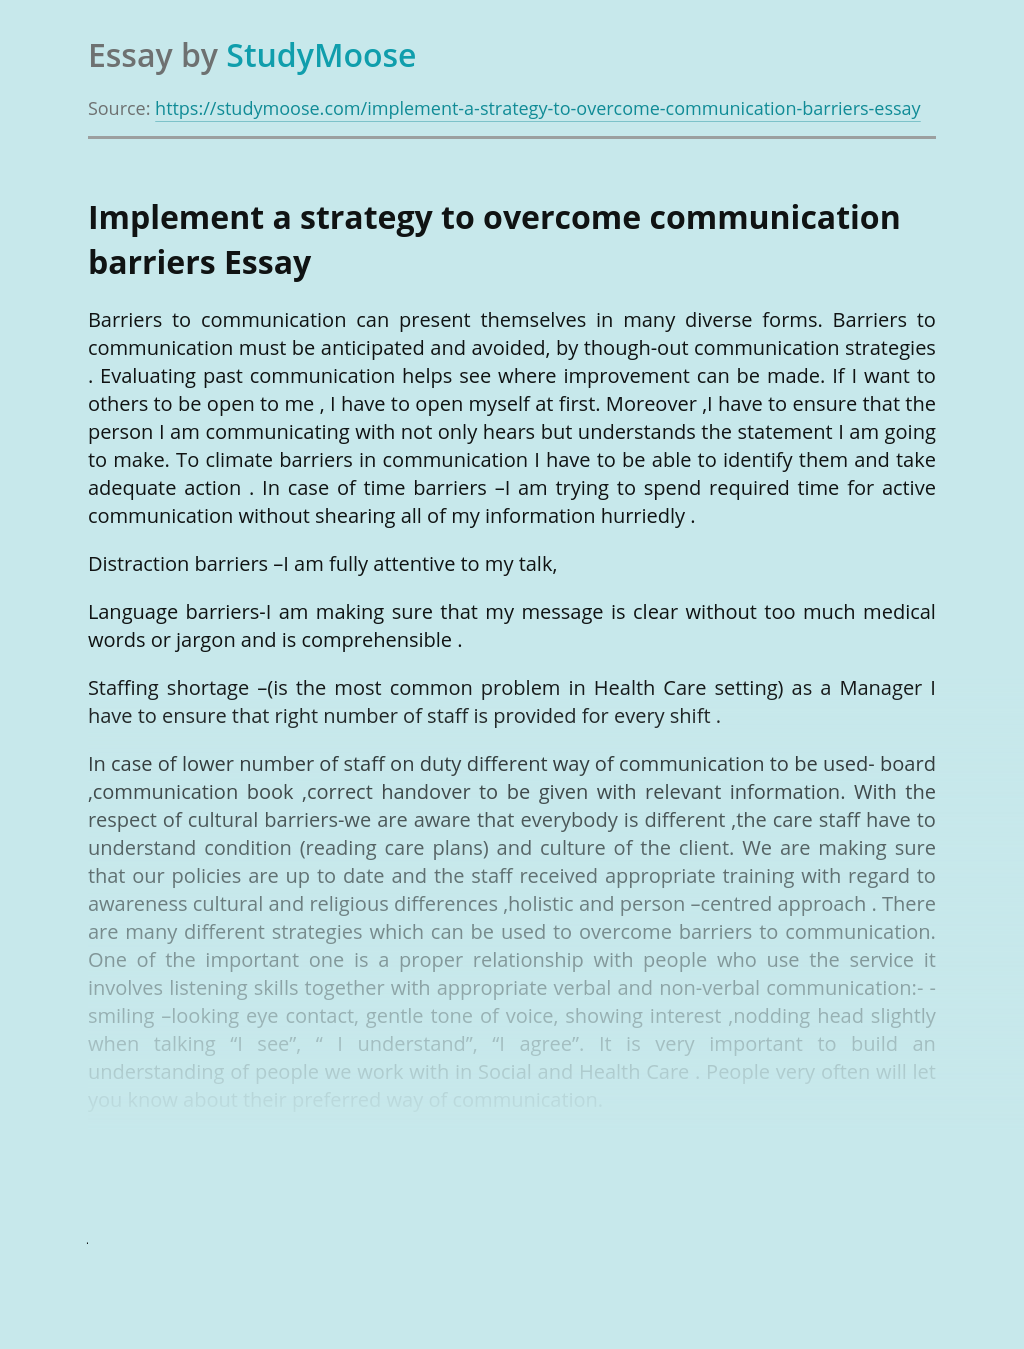 Implement a strategy to overcome communication barriers